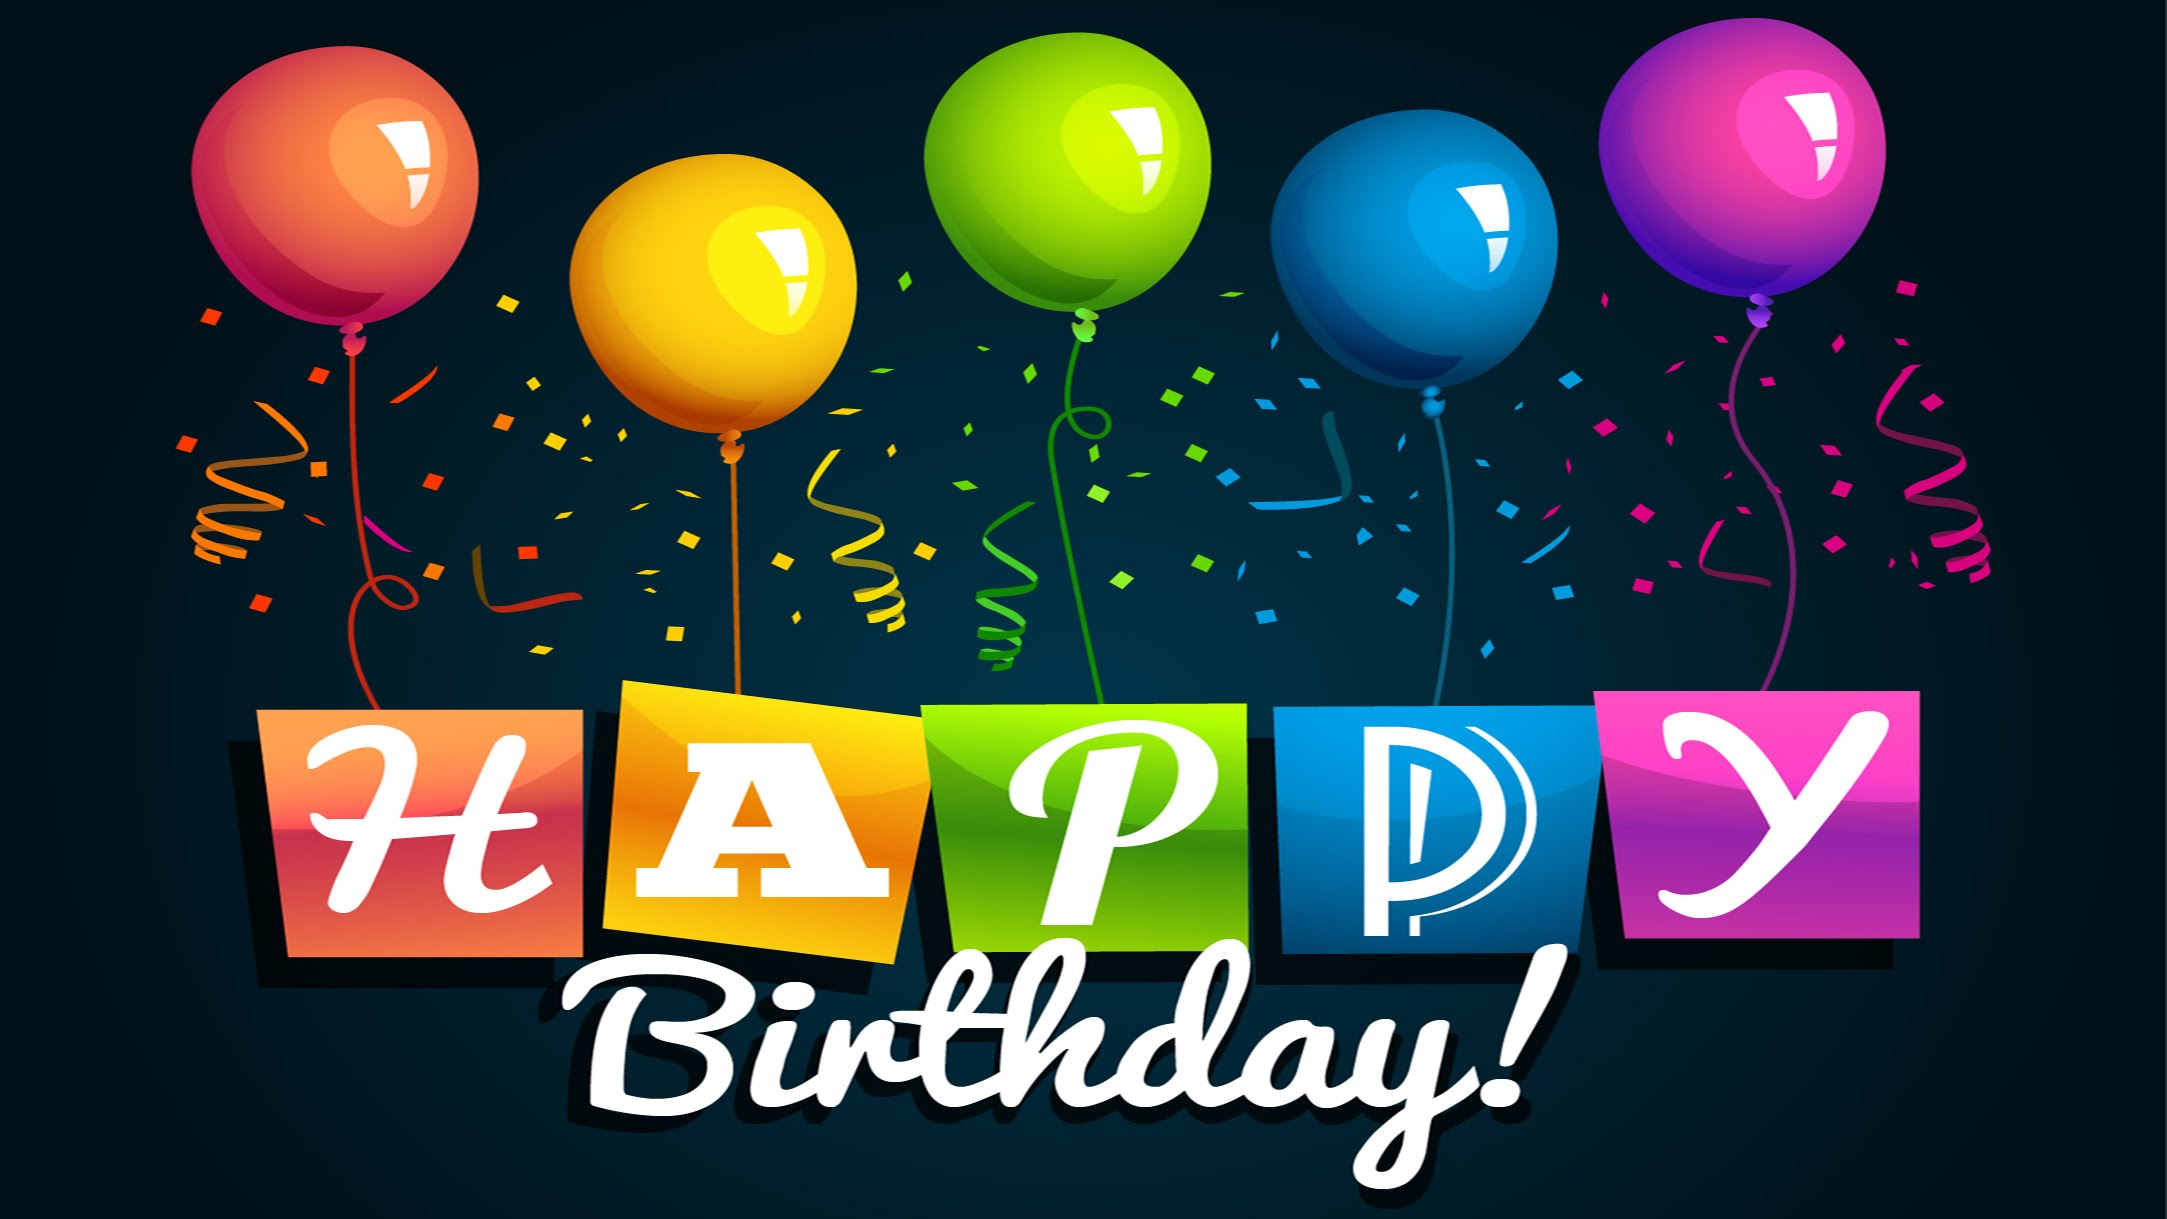 Happy Birthday Images Wallpapers Photos For Whatsapp Happy Birthday Wishes For On Wall